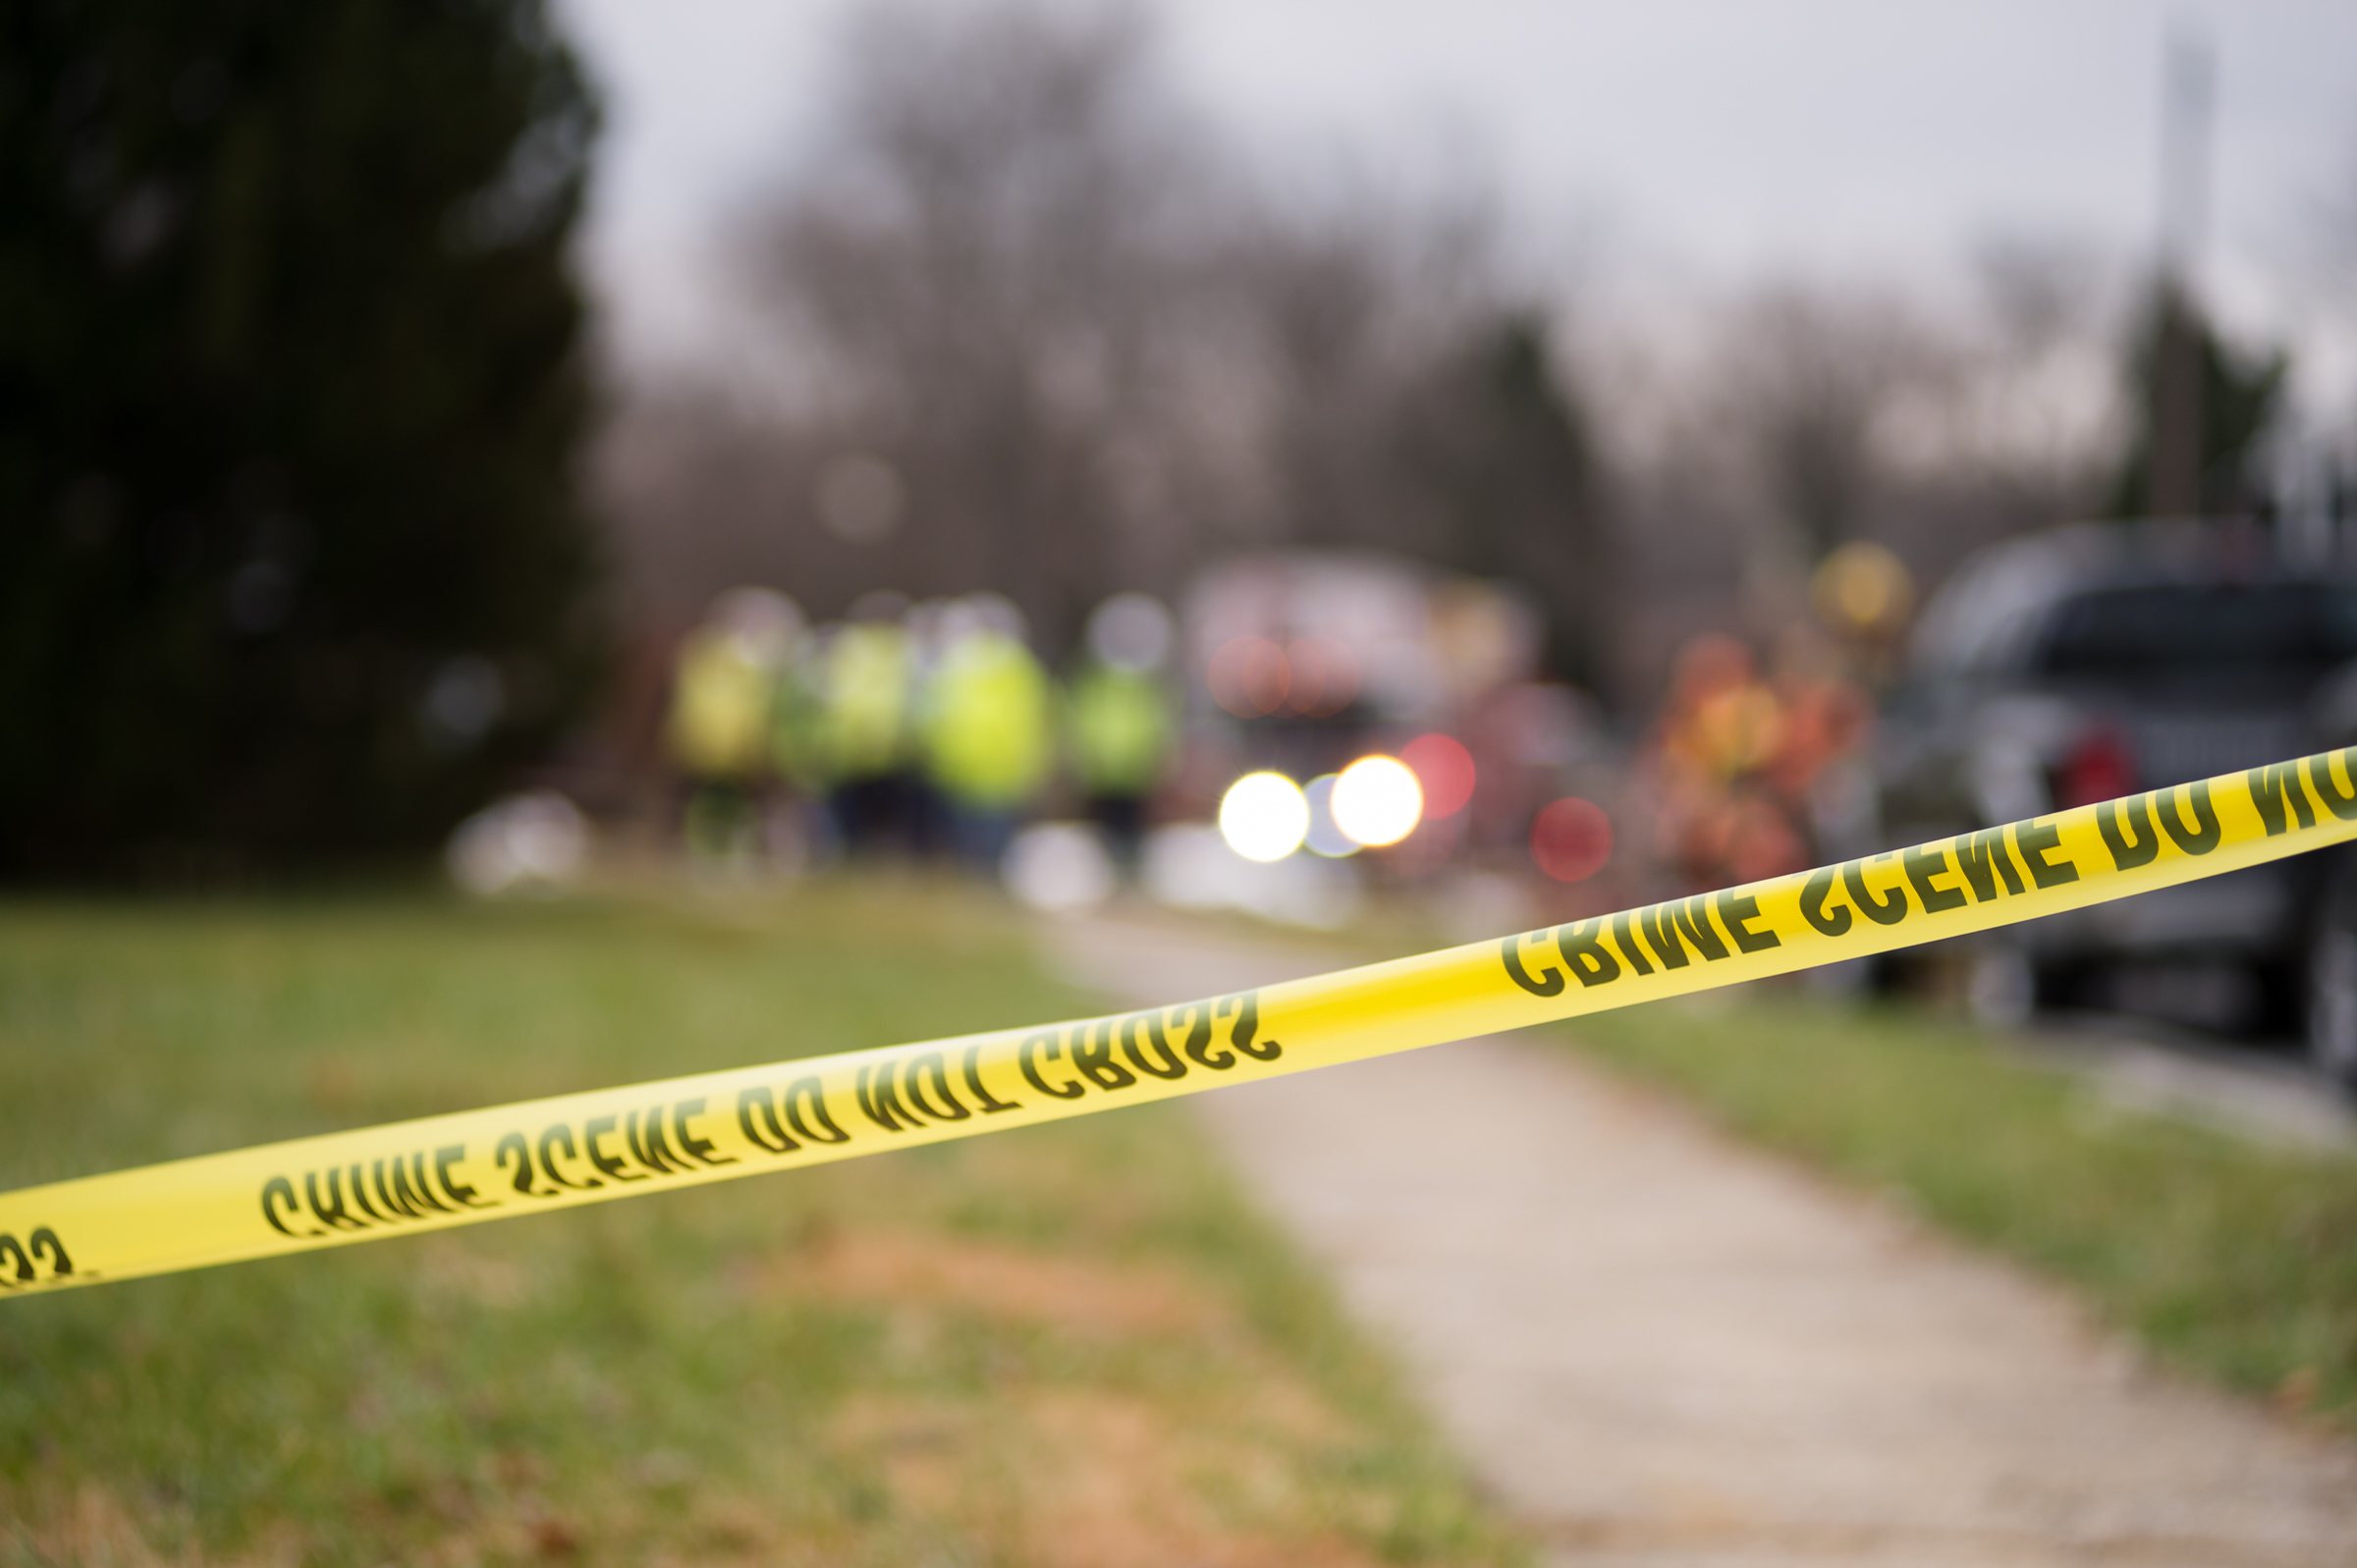 2017_12_05 - Baltimore County House Explosion 7400 block Remmore Rd Woodlawn-1384.jpg